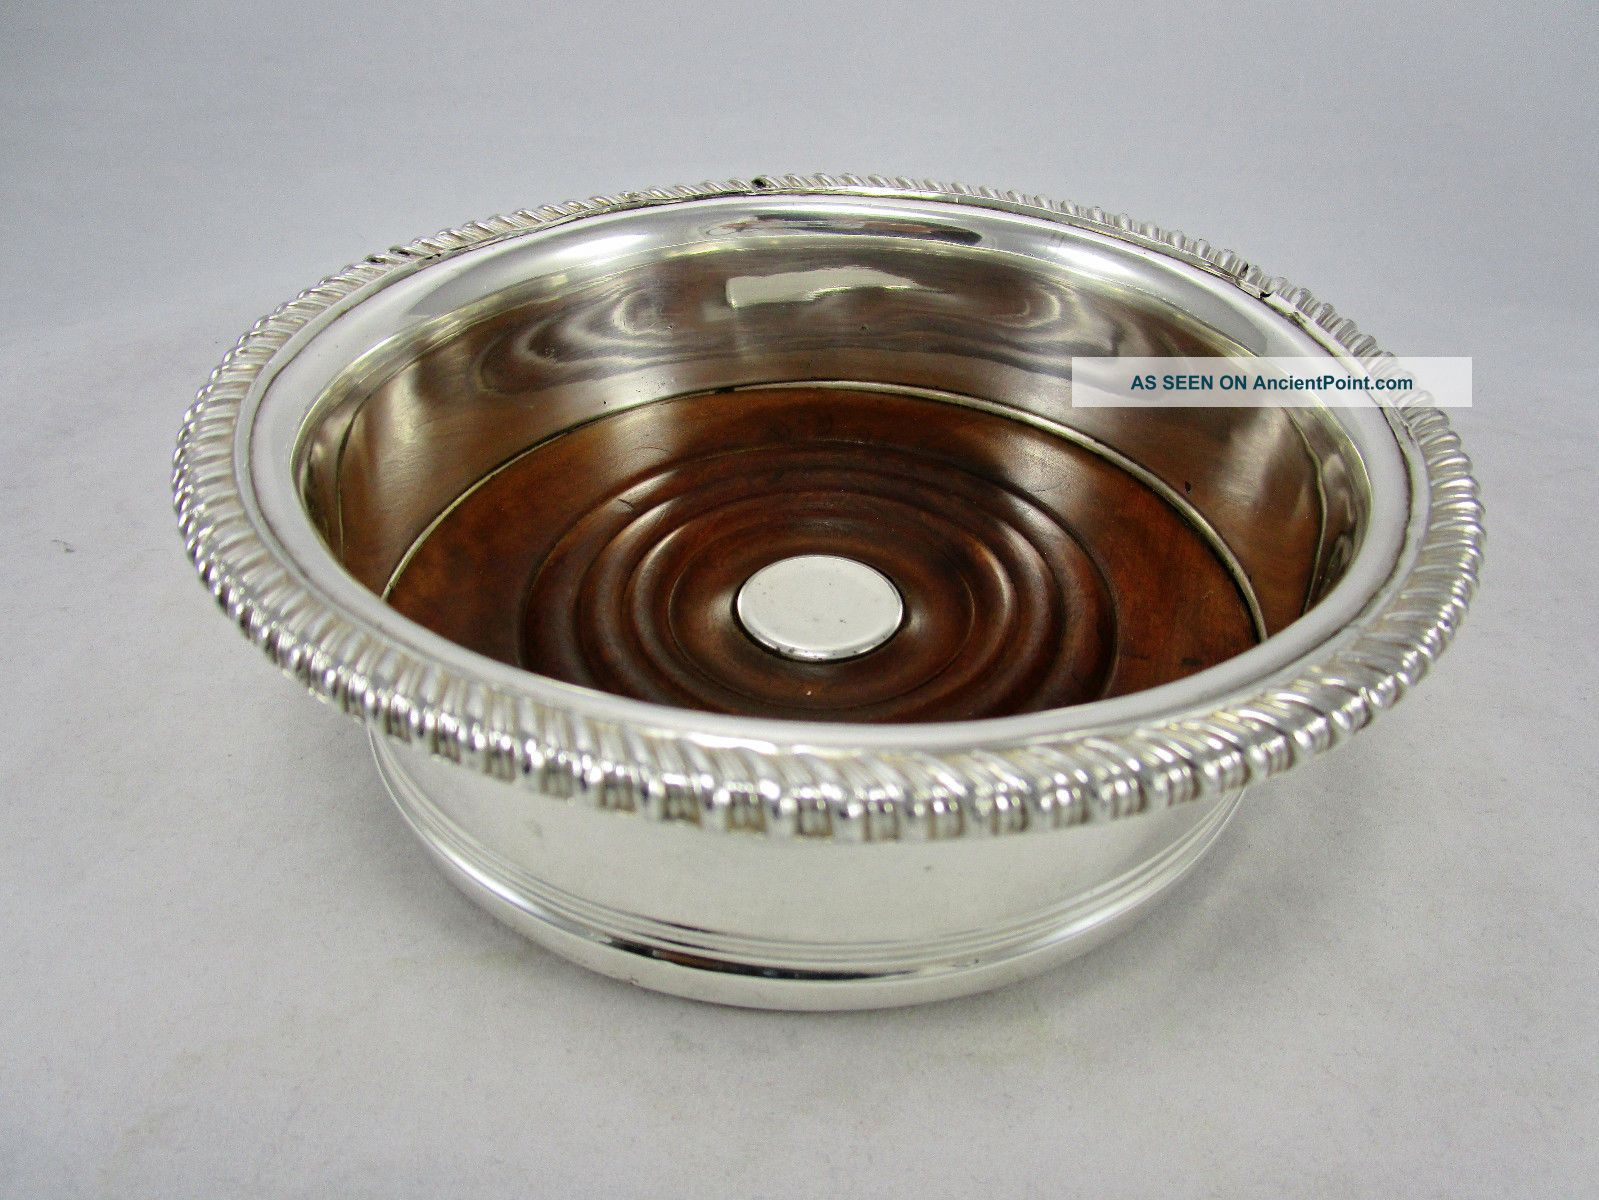 Matthew Boulton & Co Old Sheffield Plate Champagne Wine Coaster Silver Plate Dishes & Coasters photo